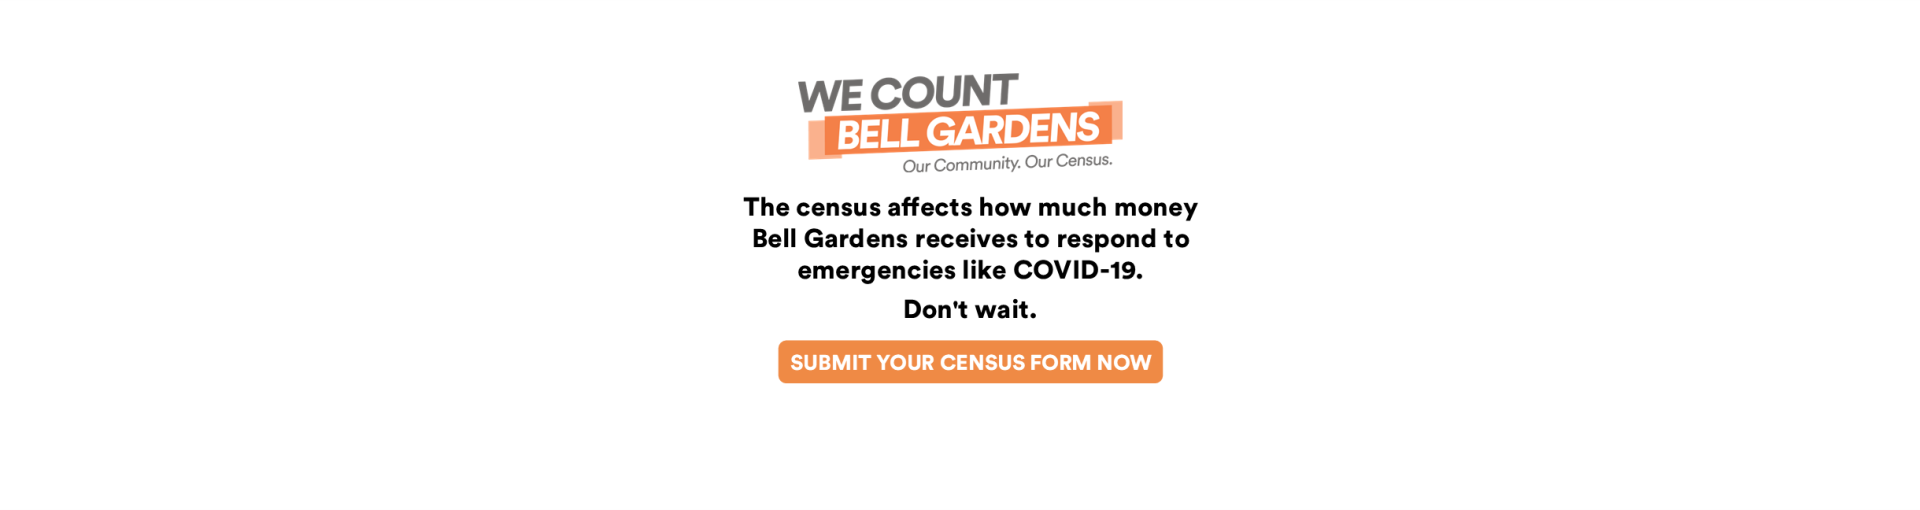 2020 Census We Count Webpage Banner